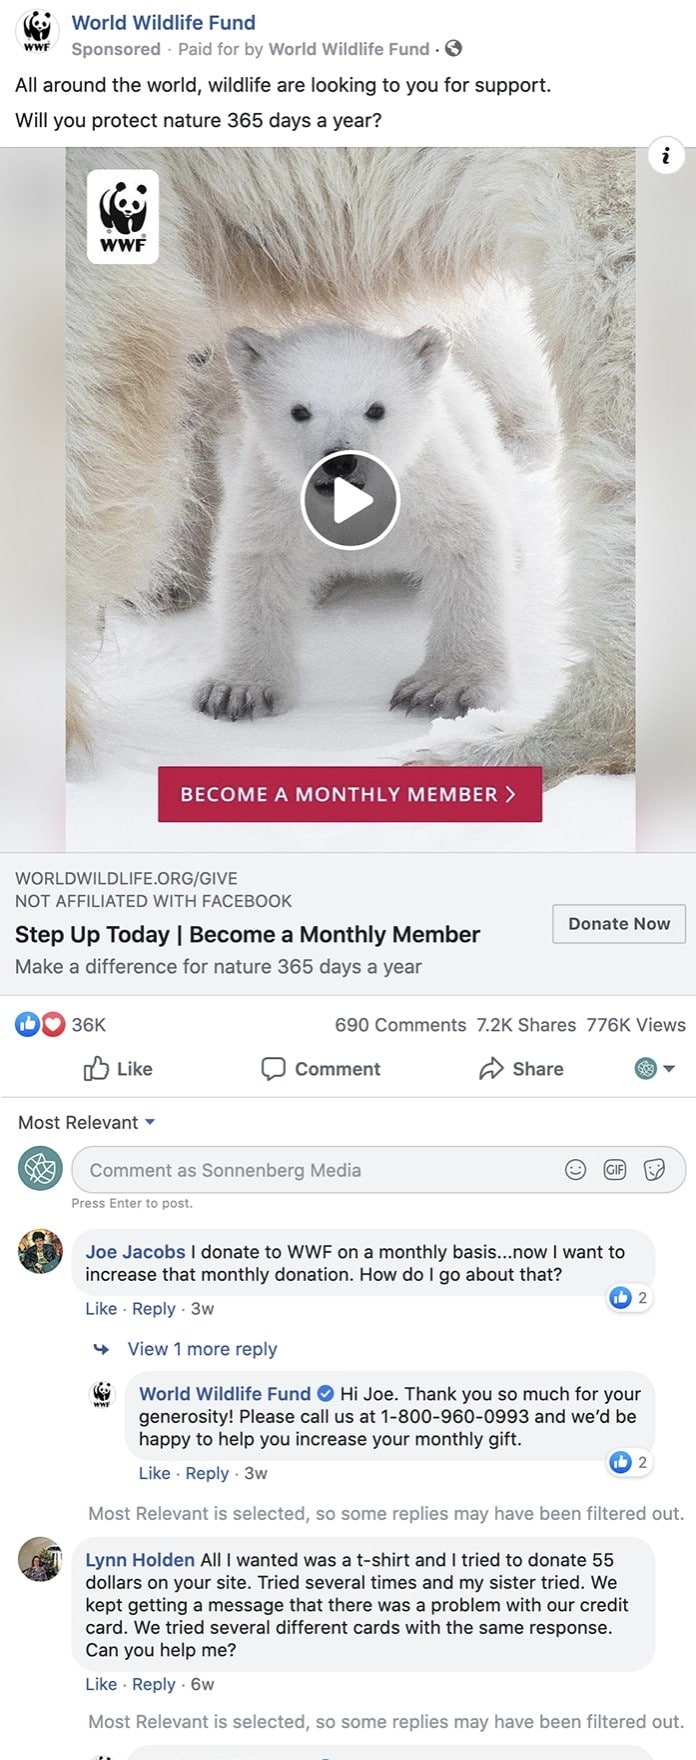 example of facebook ad comments